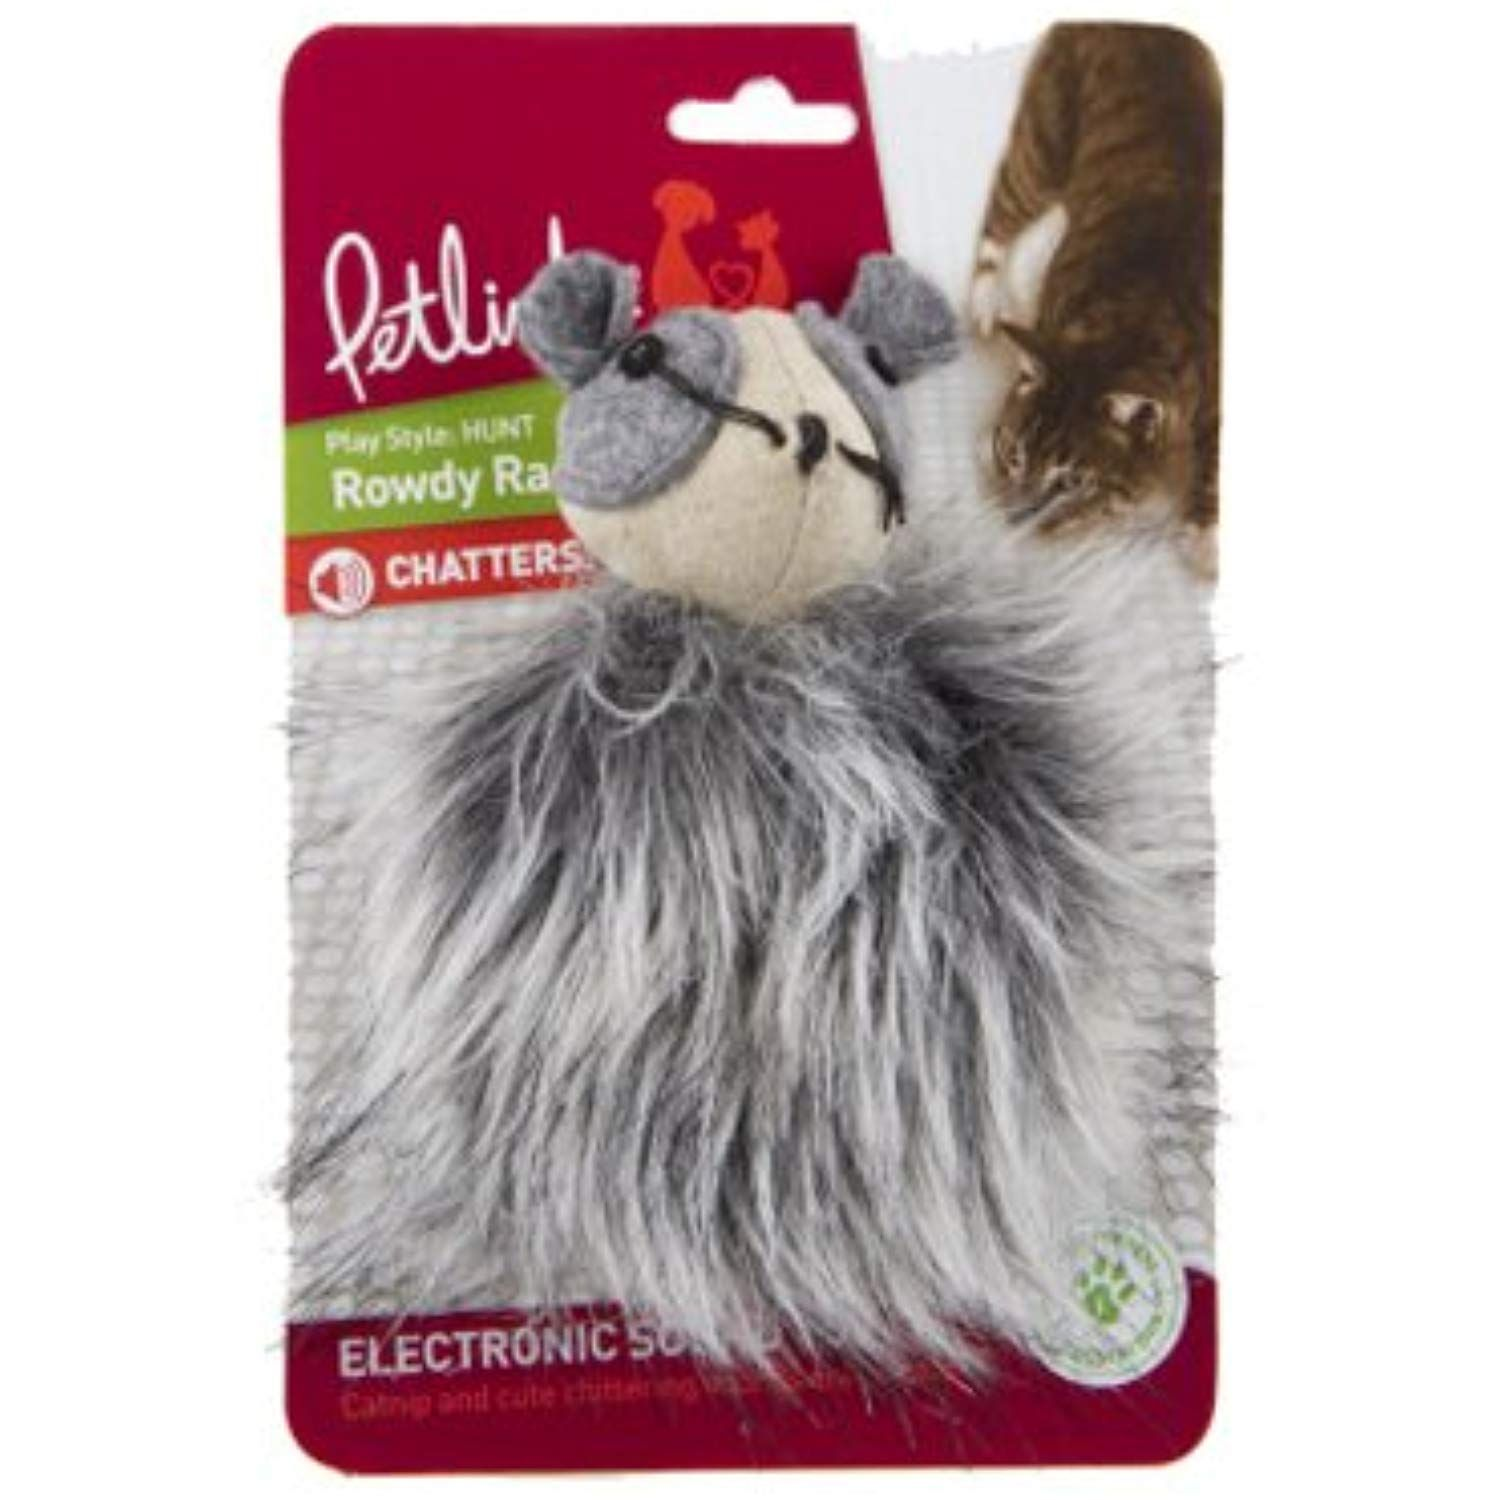 Petlinks Rowdy Raccoon Cat Toy Check Out The Image By Visiting The Link This Is An Affiliate Link Cattoys Cat Toys Catnip Toys Cat Pet Supplies